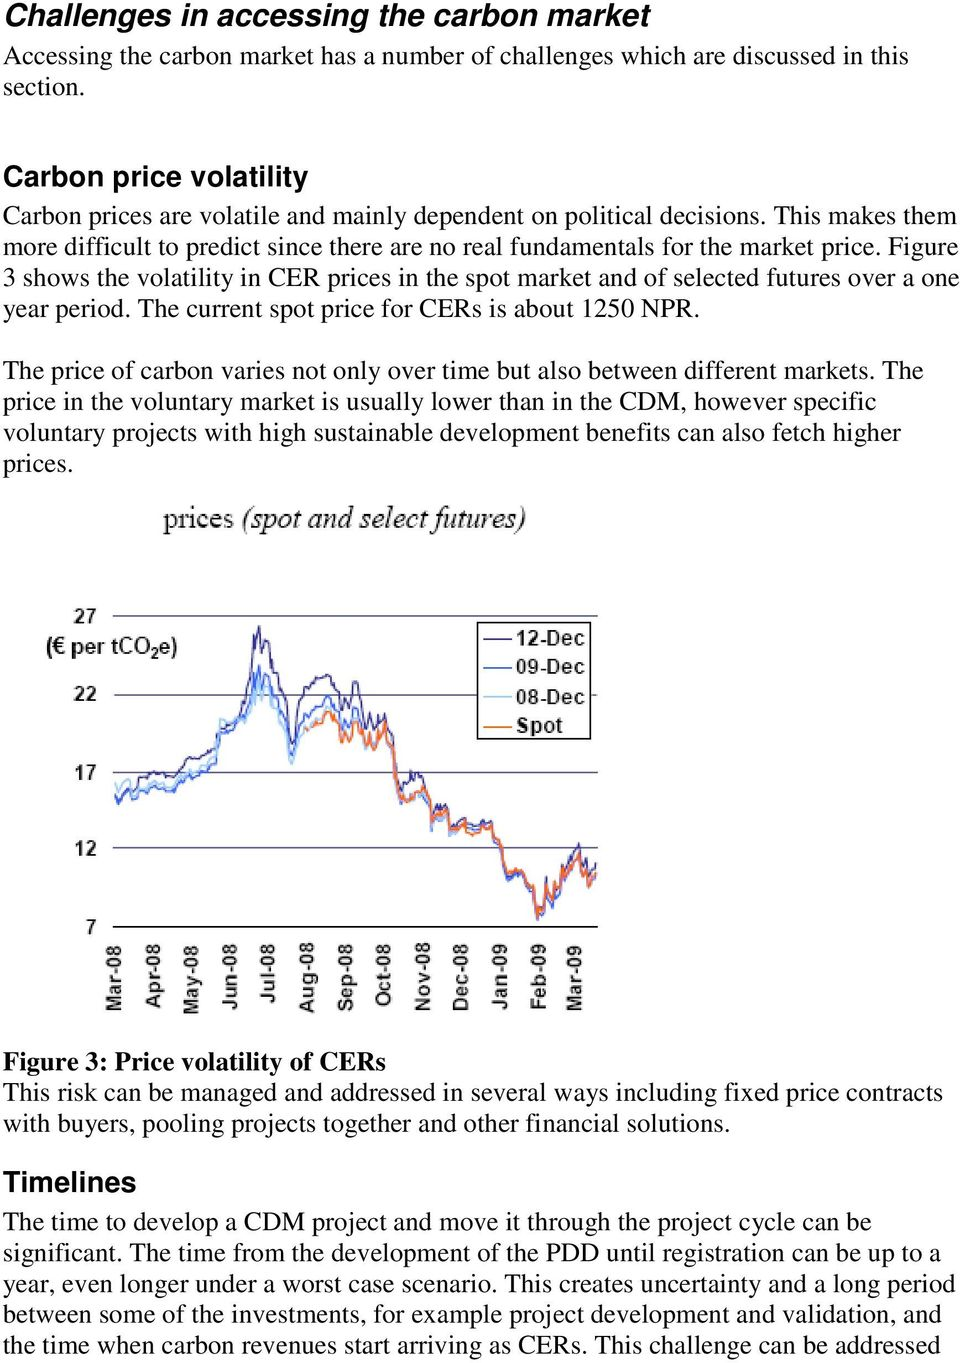 Figure 3 shows the volatility in CER prices in the spot market and of selected futures over a one year period. The current spot price for CERs is about 1250 NPR.